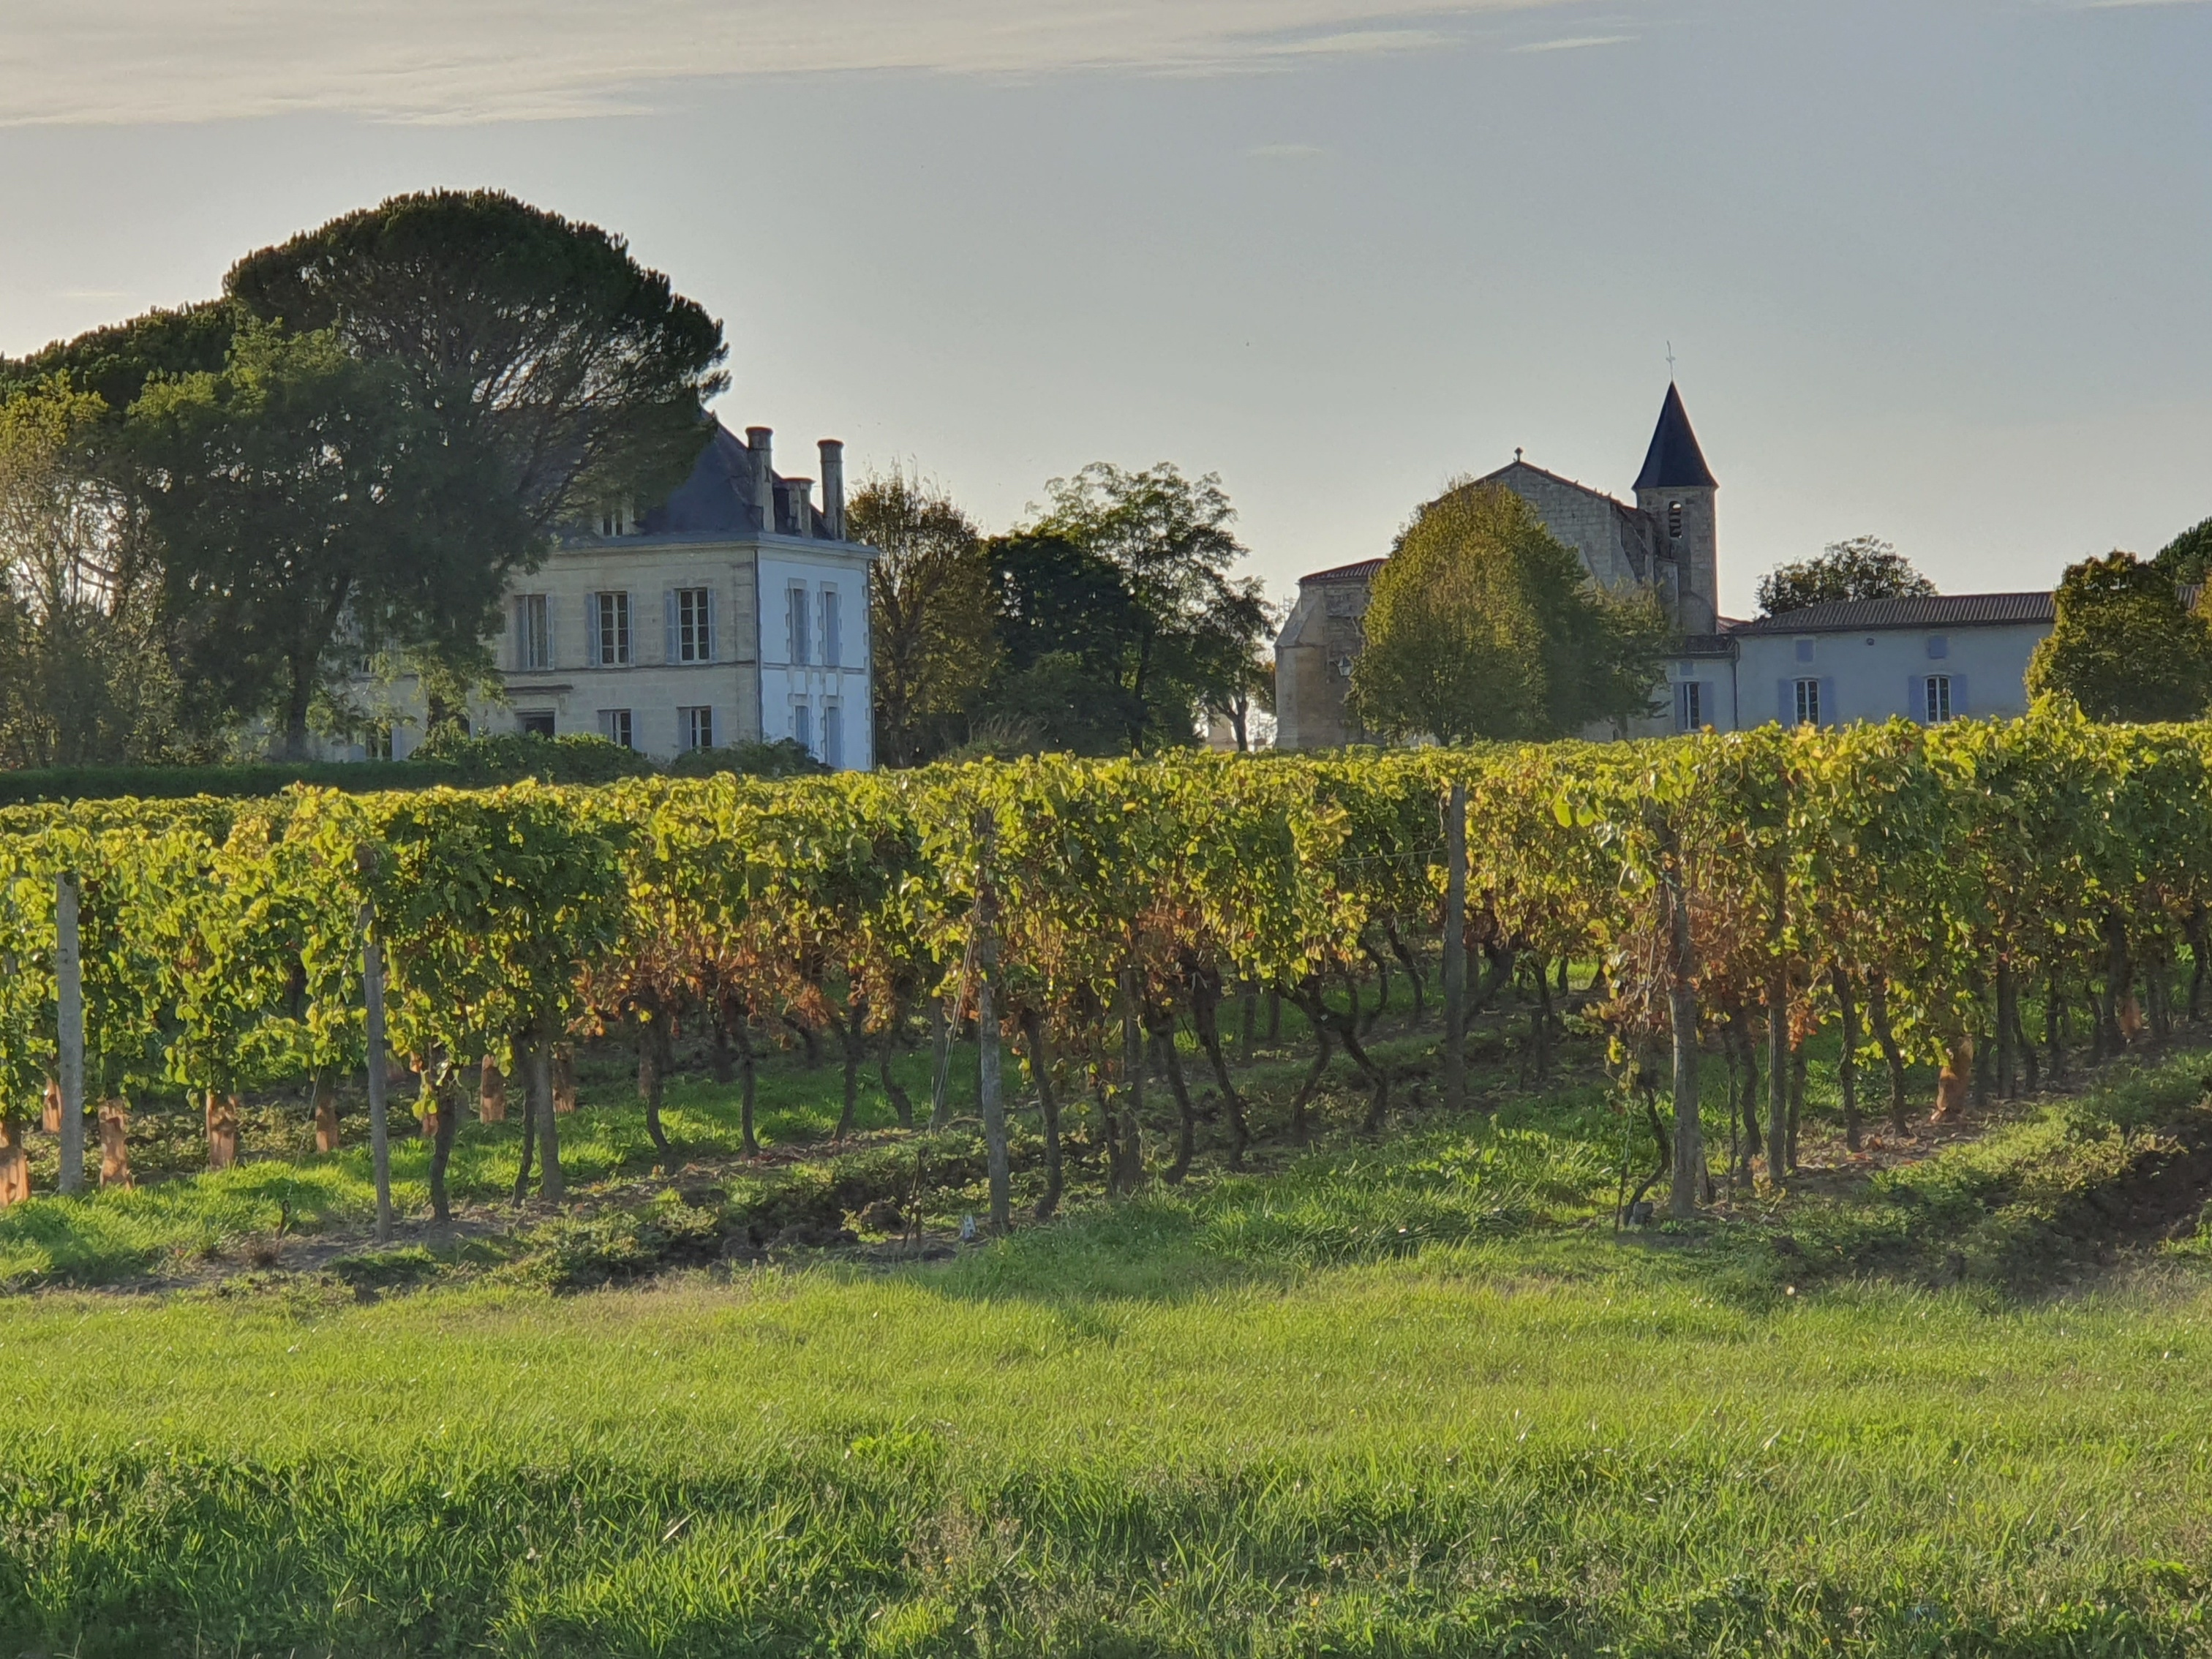 Le Logis from across the vines